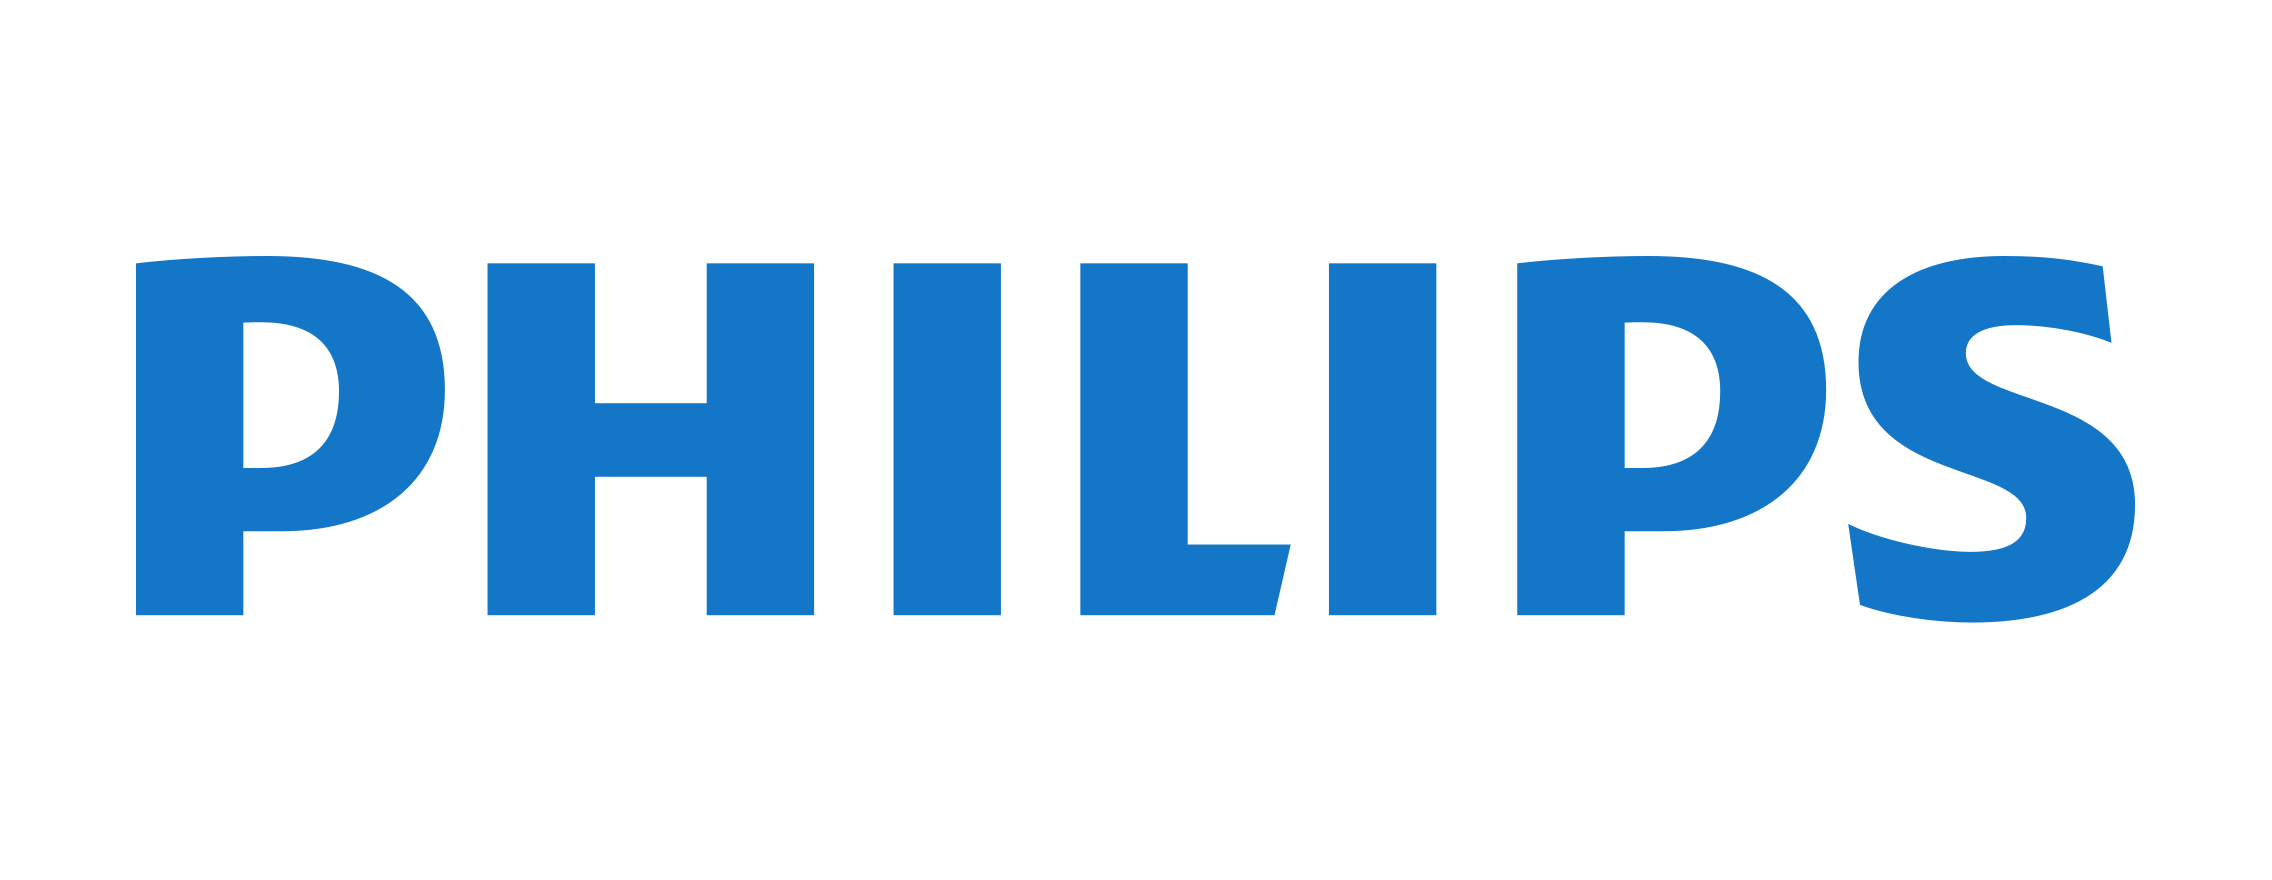 Philips-logo-wordmark.png